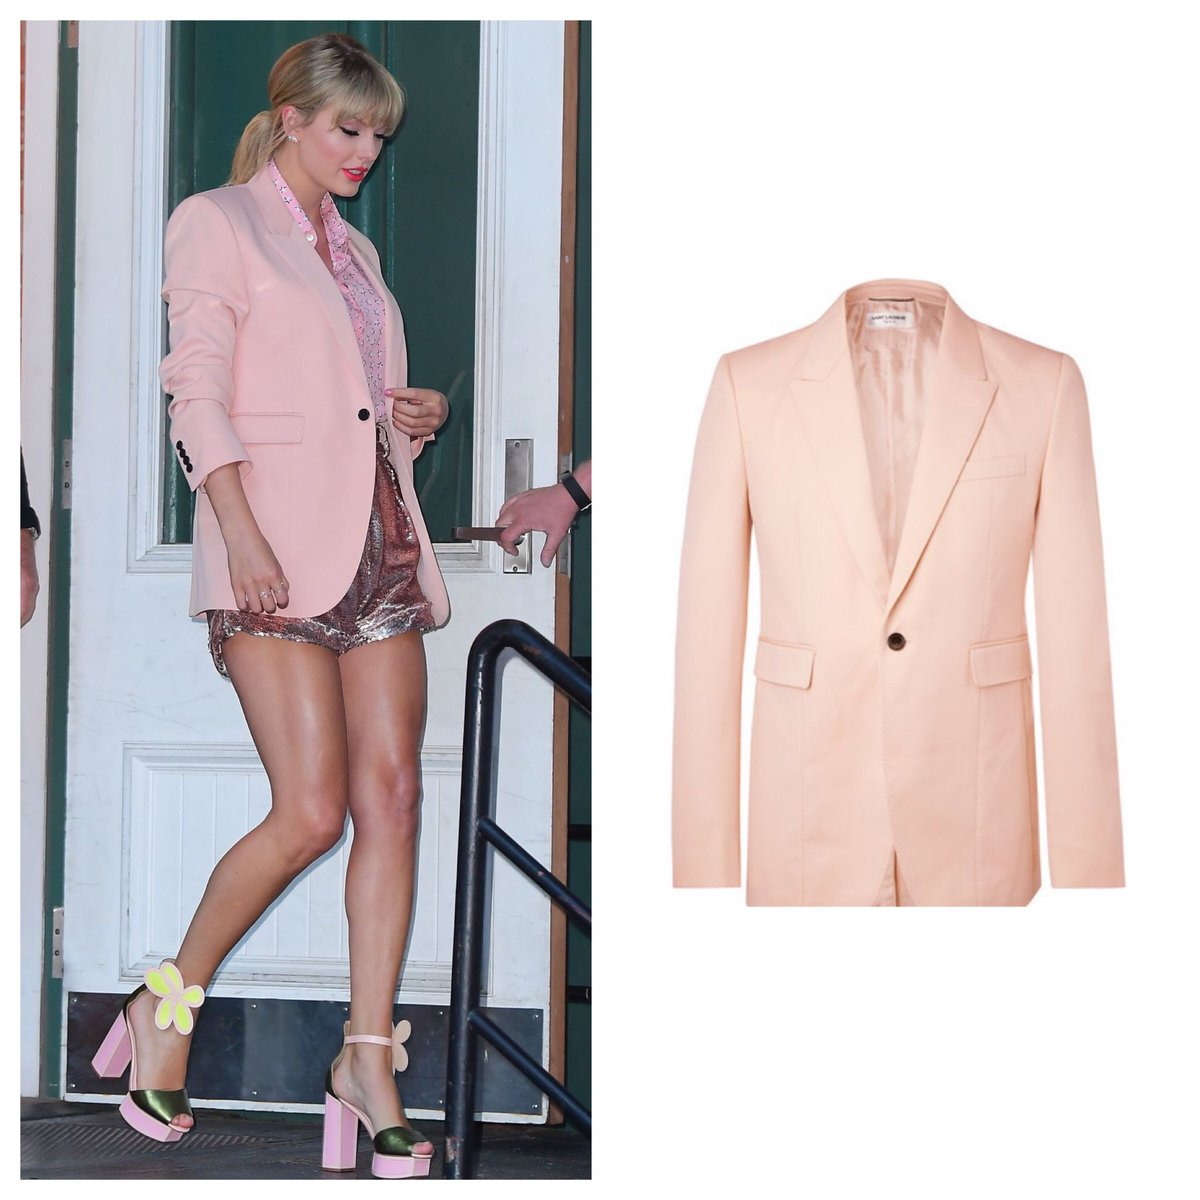 To finish her look, @taylorswift13 wears pink on pink @YSL (blazer, mens sold out; blouse, $1.3k) <br>http://pic.twitter.com/pxU36xF1mS